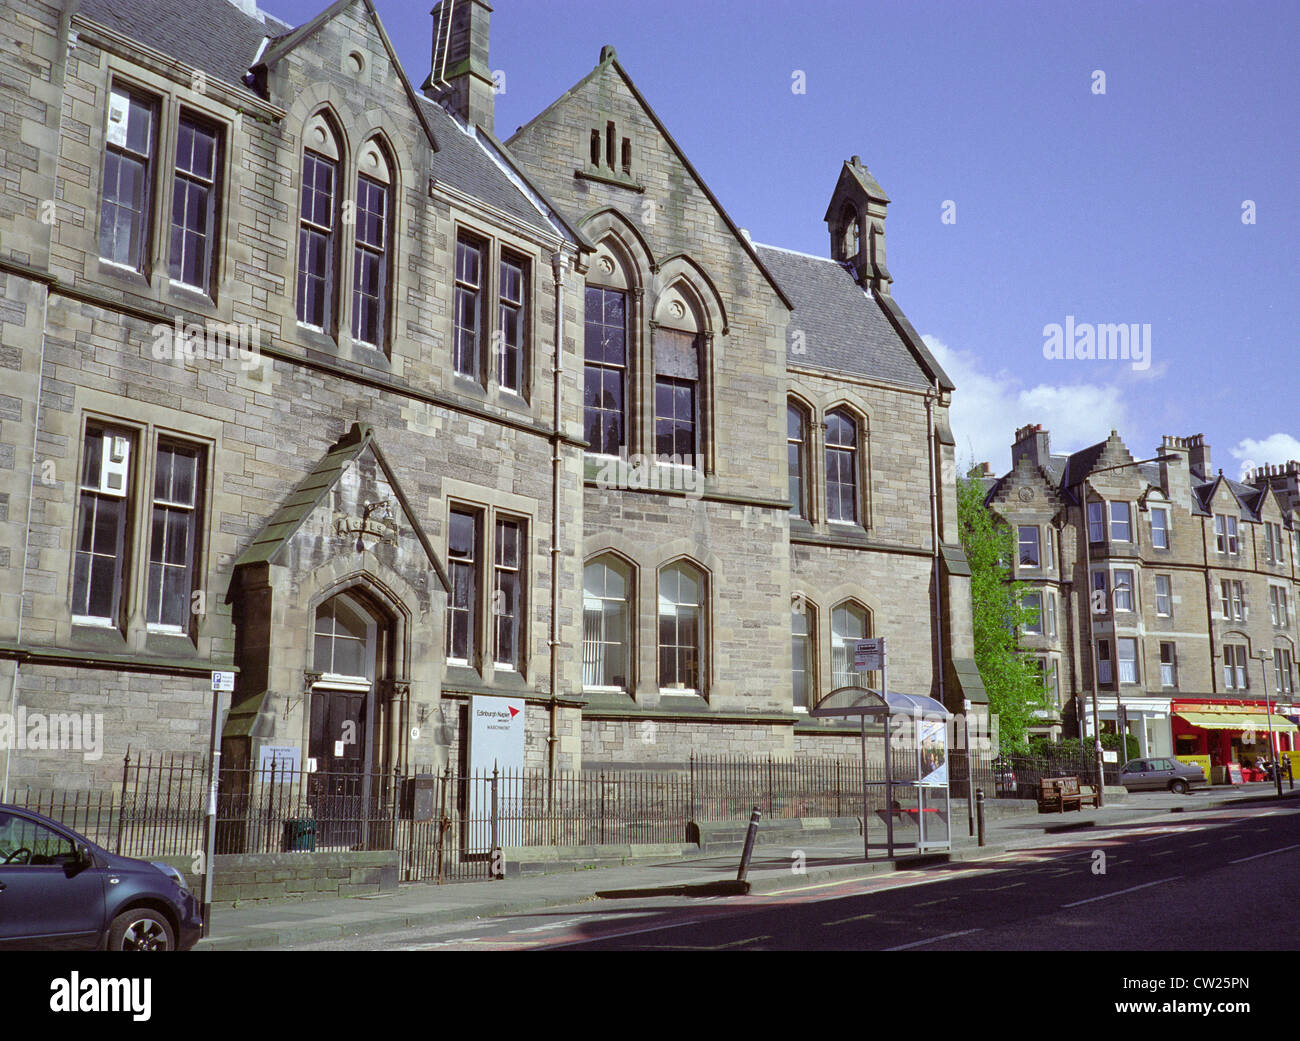 School of Arts & Creative Industries, Marchmont Road, Napier University, Marchmont Campus, Edinburgh, Scotland, - Stock Image